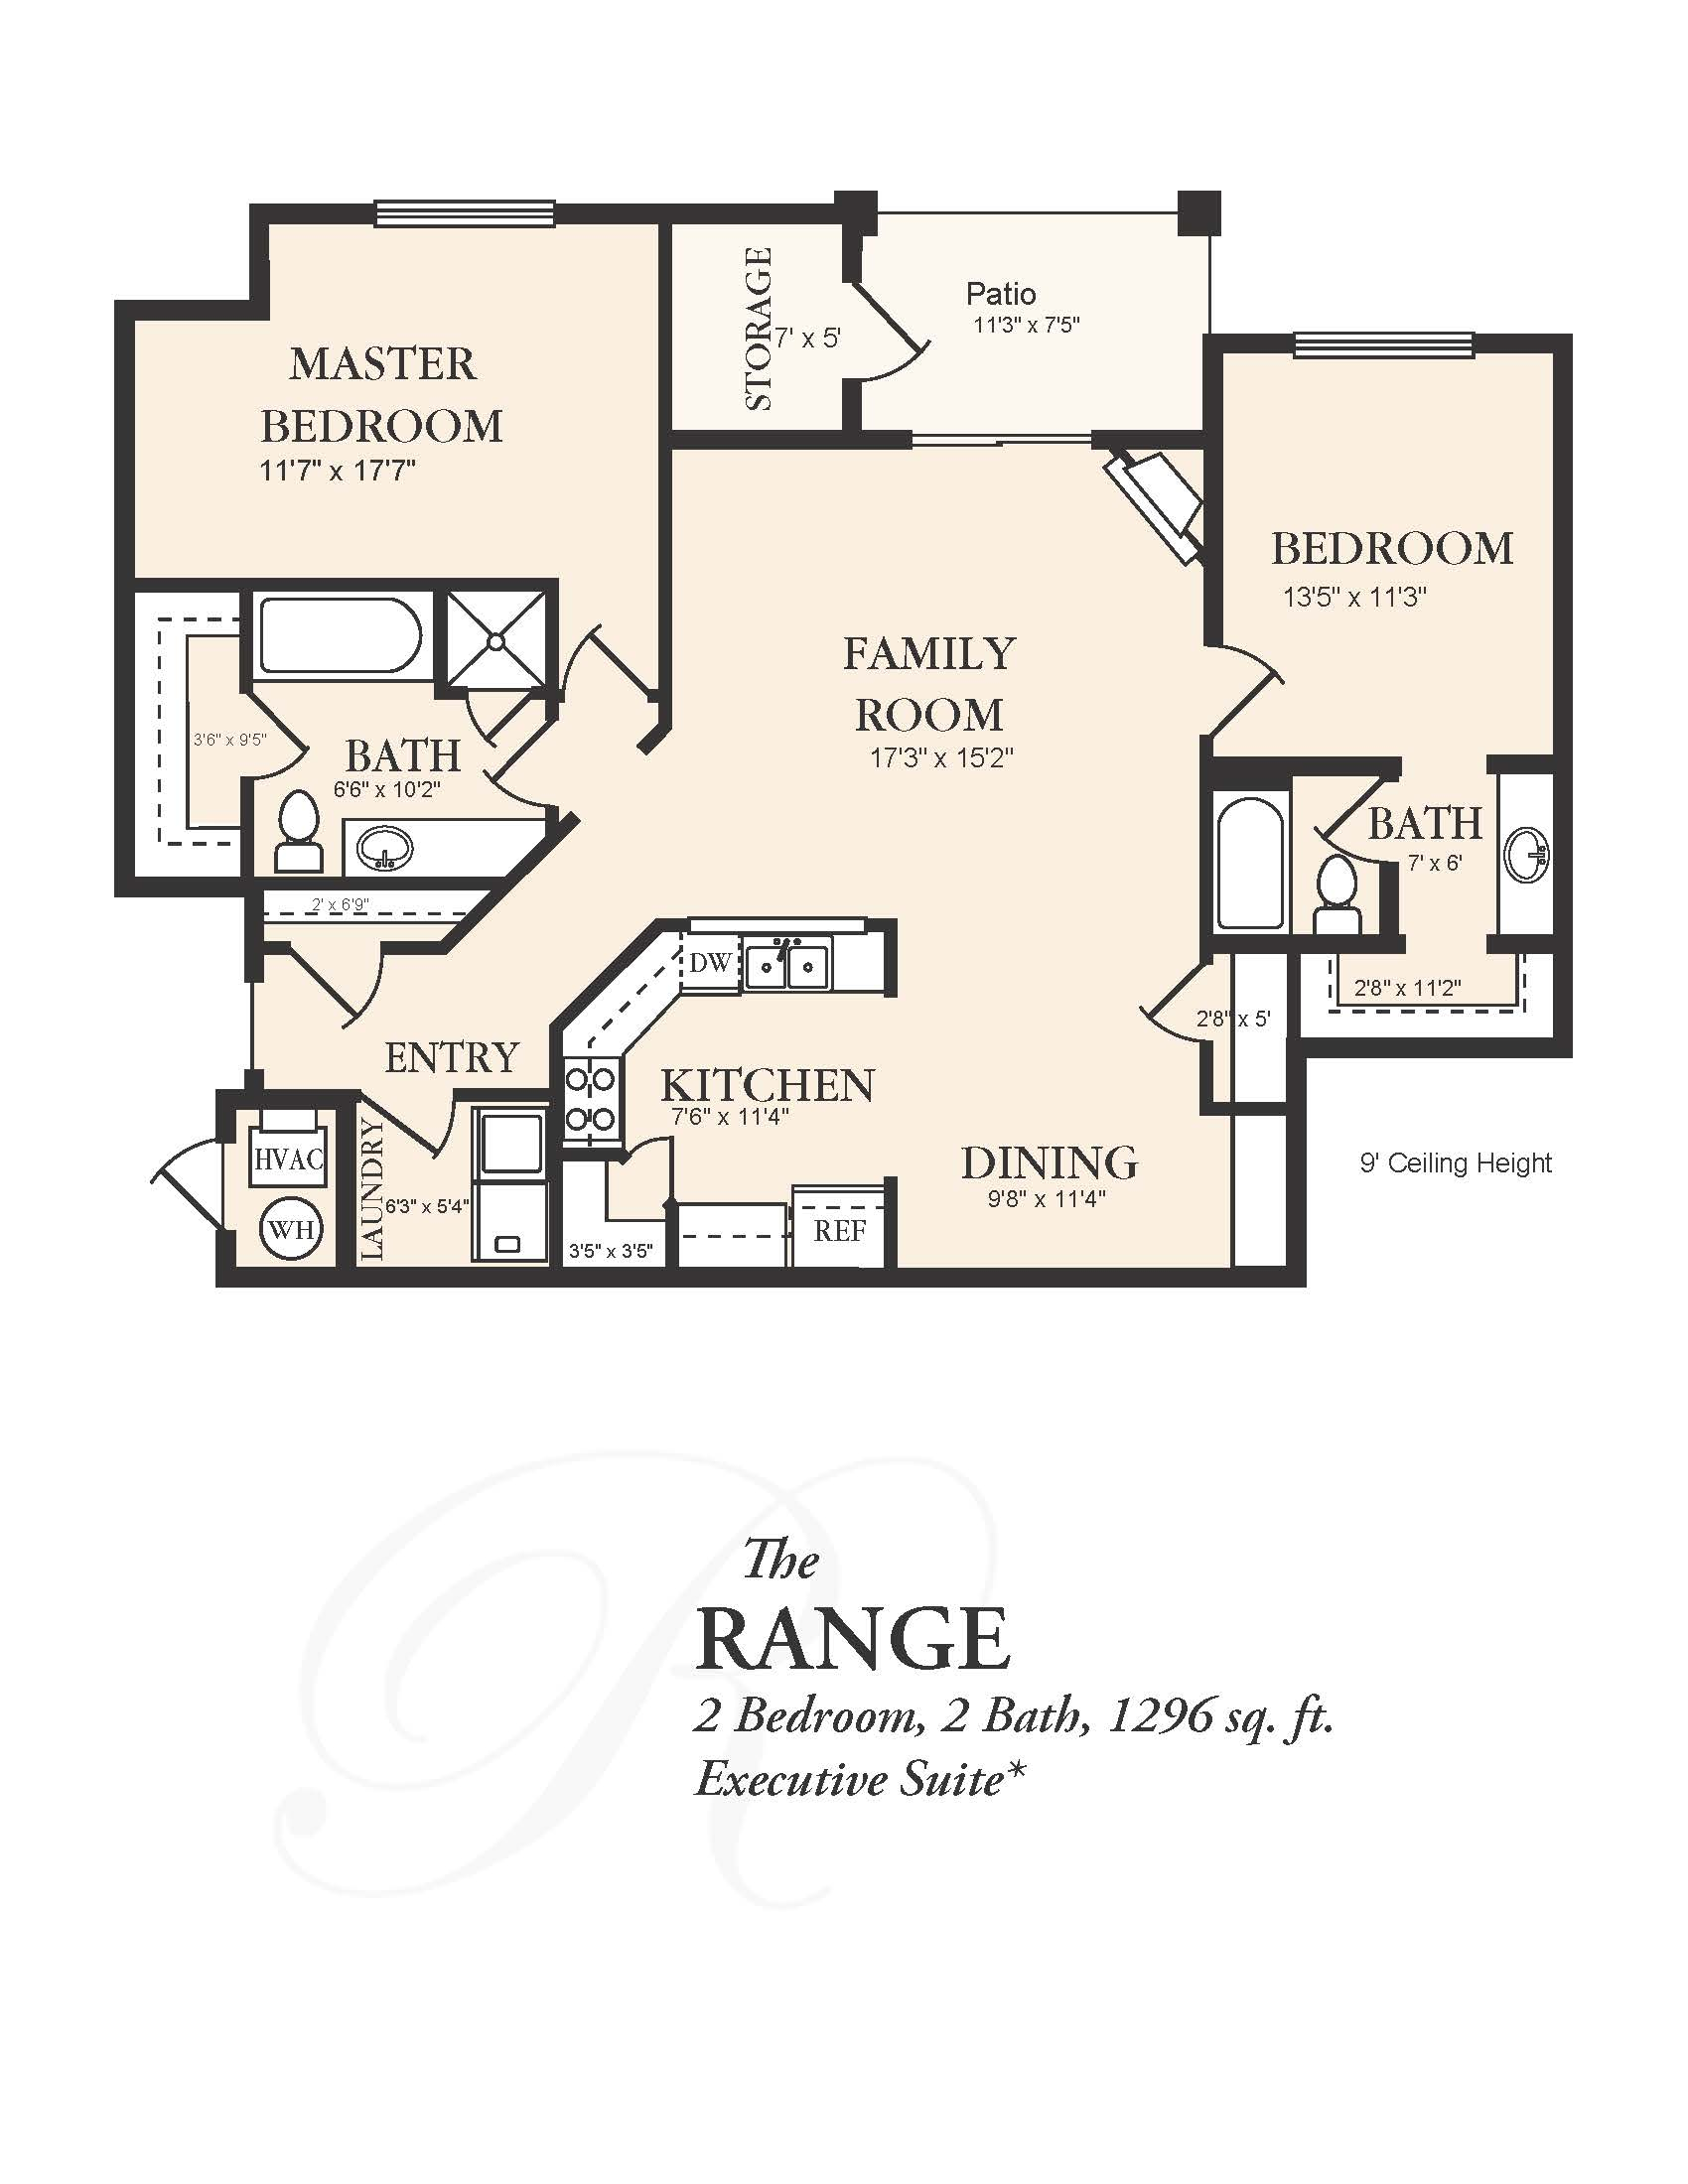 2Bedroom 2 Bath apartment available today at The Ridge at Blackmore in Casper